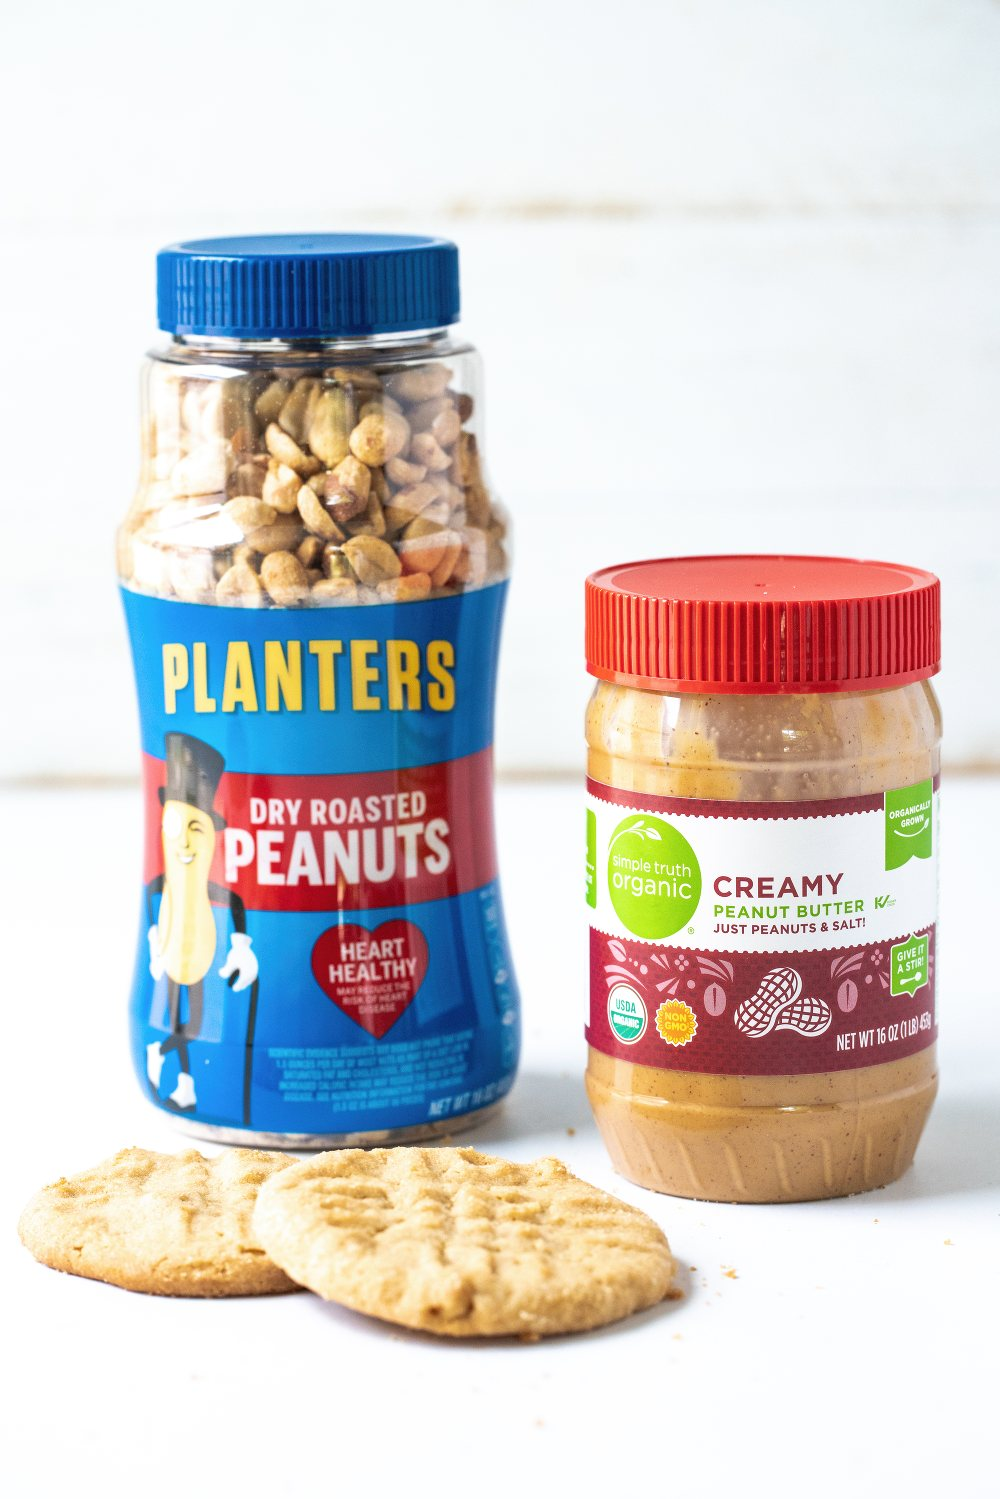 Classic peanut butter cookies made with both peanut butter and crunchy peanuts!